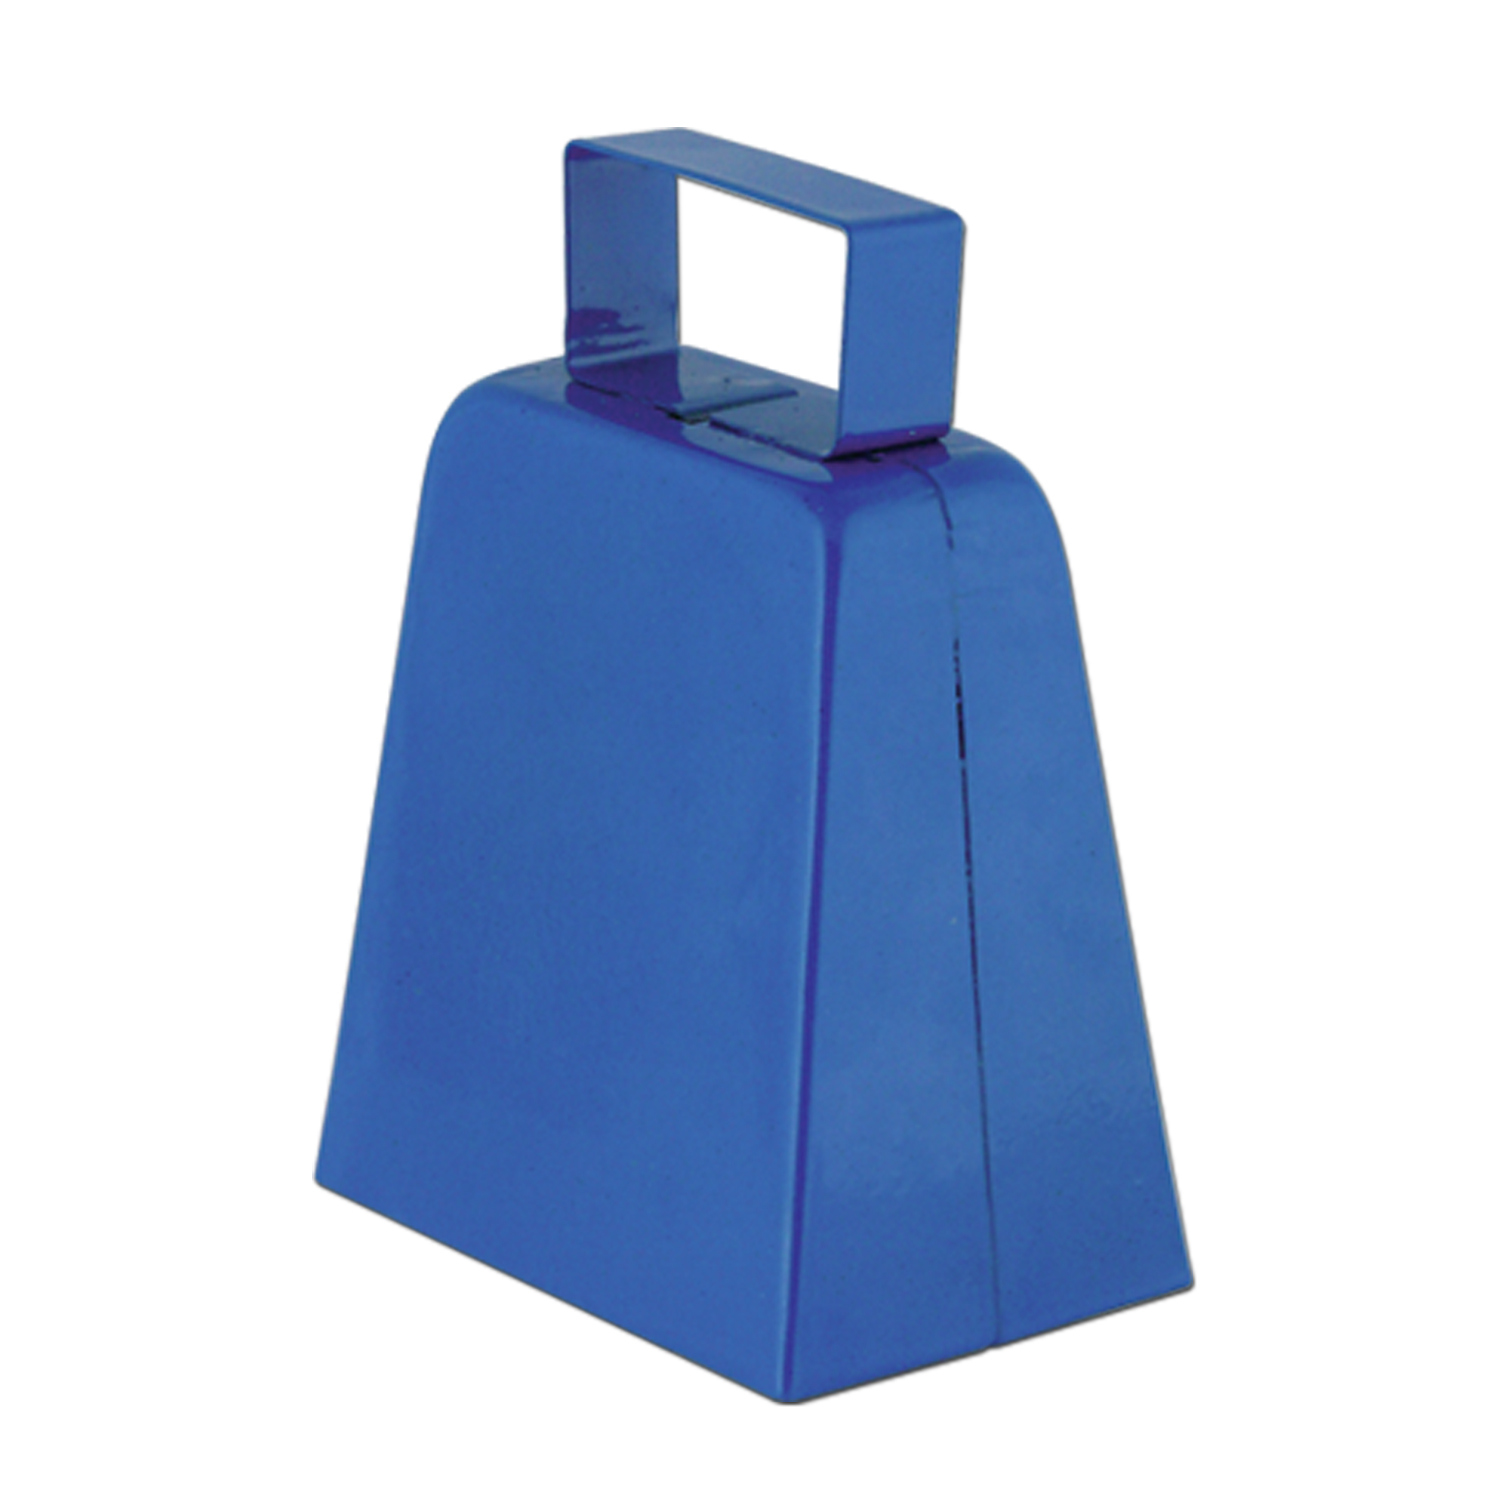 Cowbells (Pack of 12) blue, cowbell, noisemaker, party, football, tailgating, superbowl, playoffs,